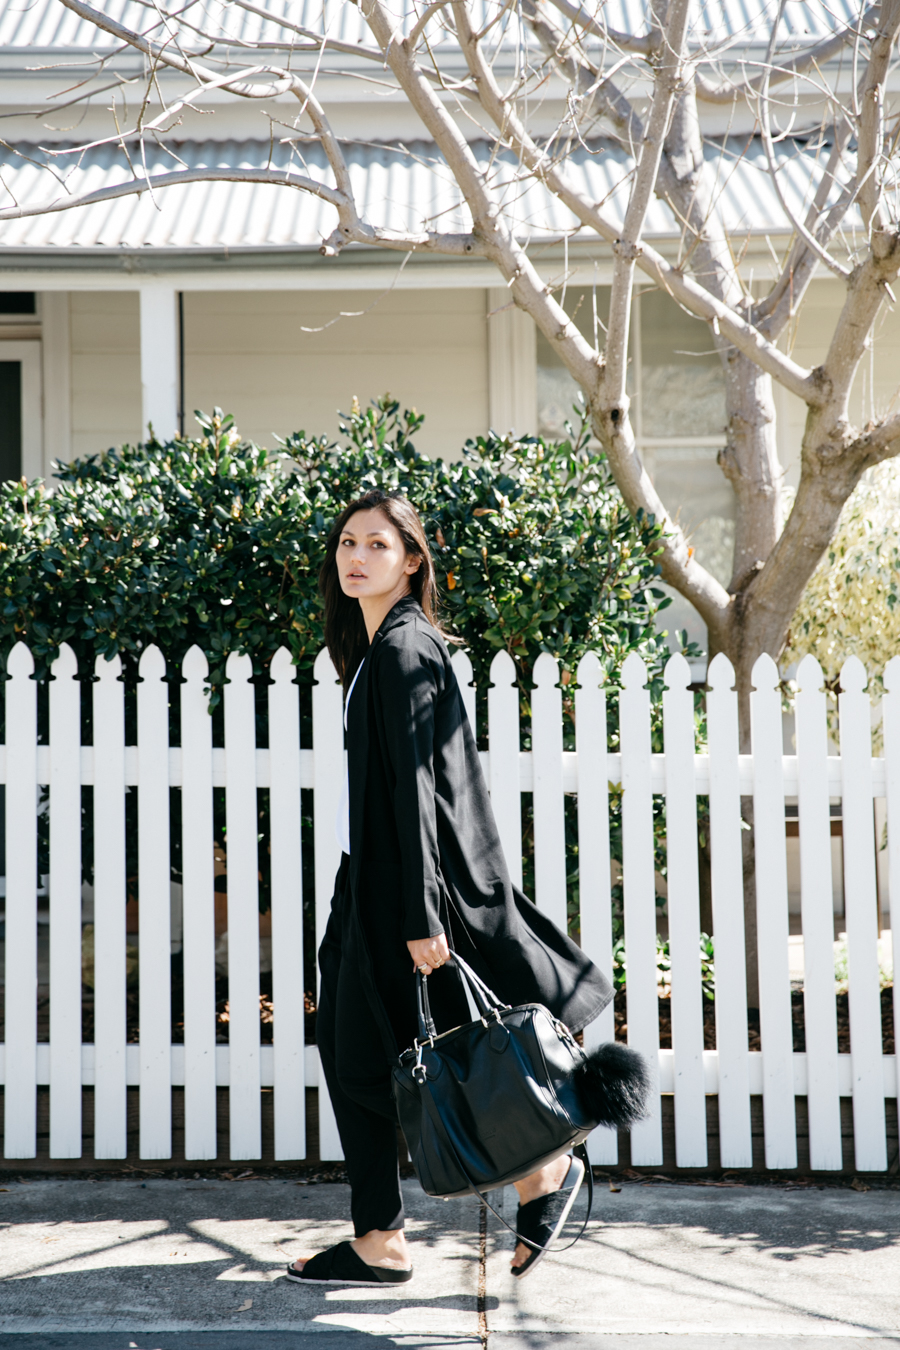 Long black coat for minimalist style.